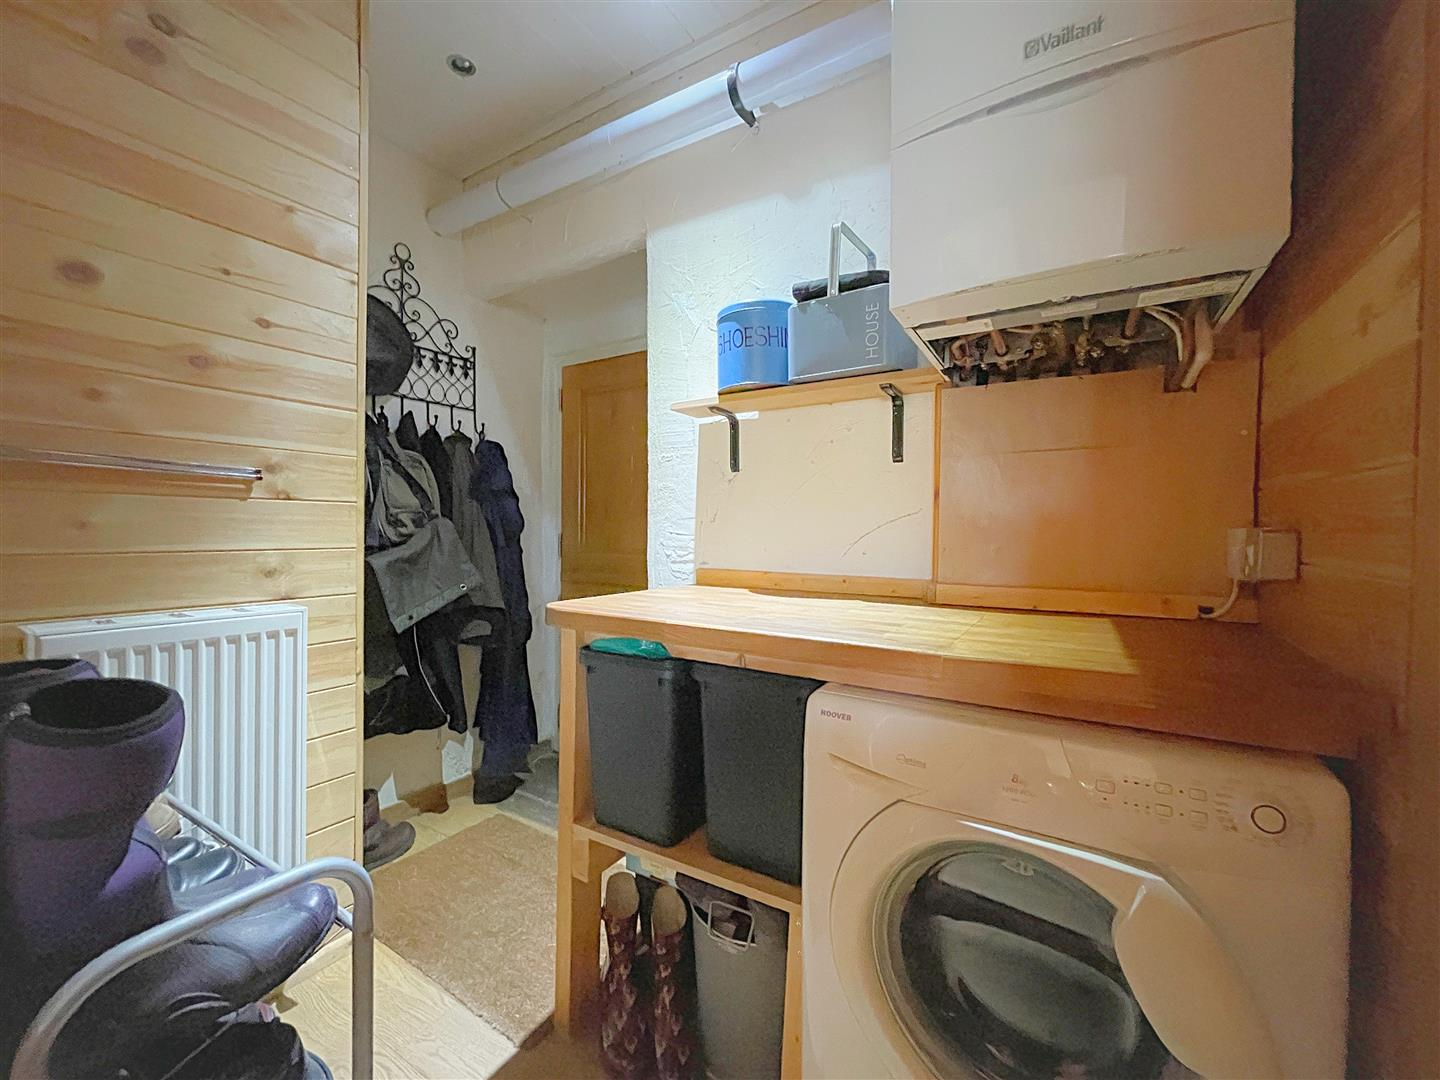 UTILITY AND GROUND FLOOR CLOACK ROOM